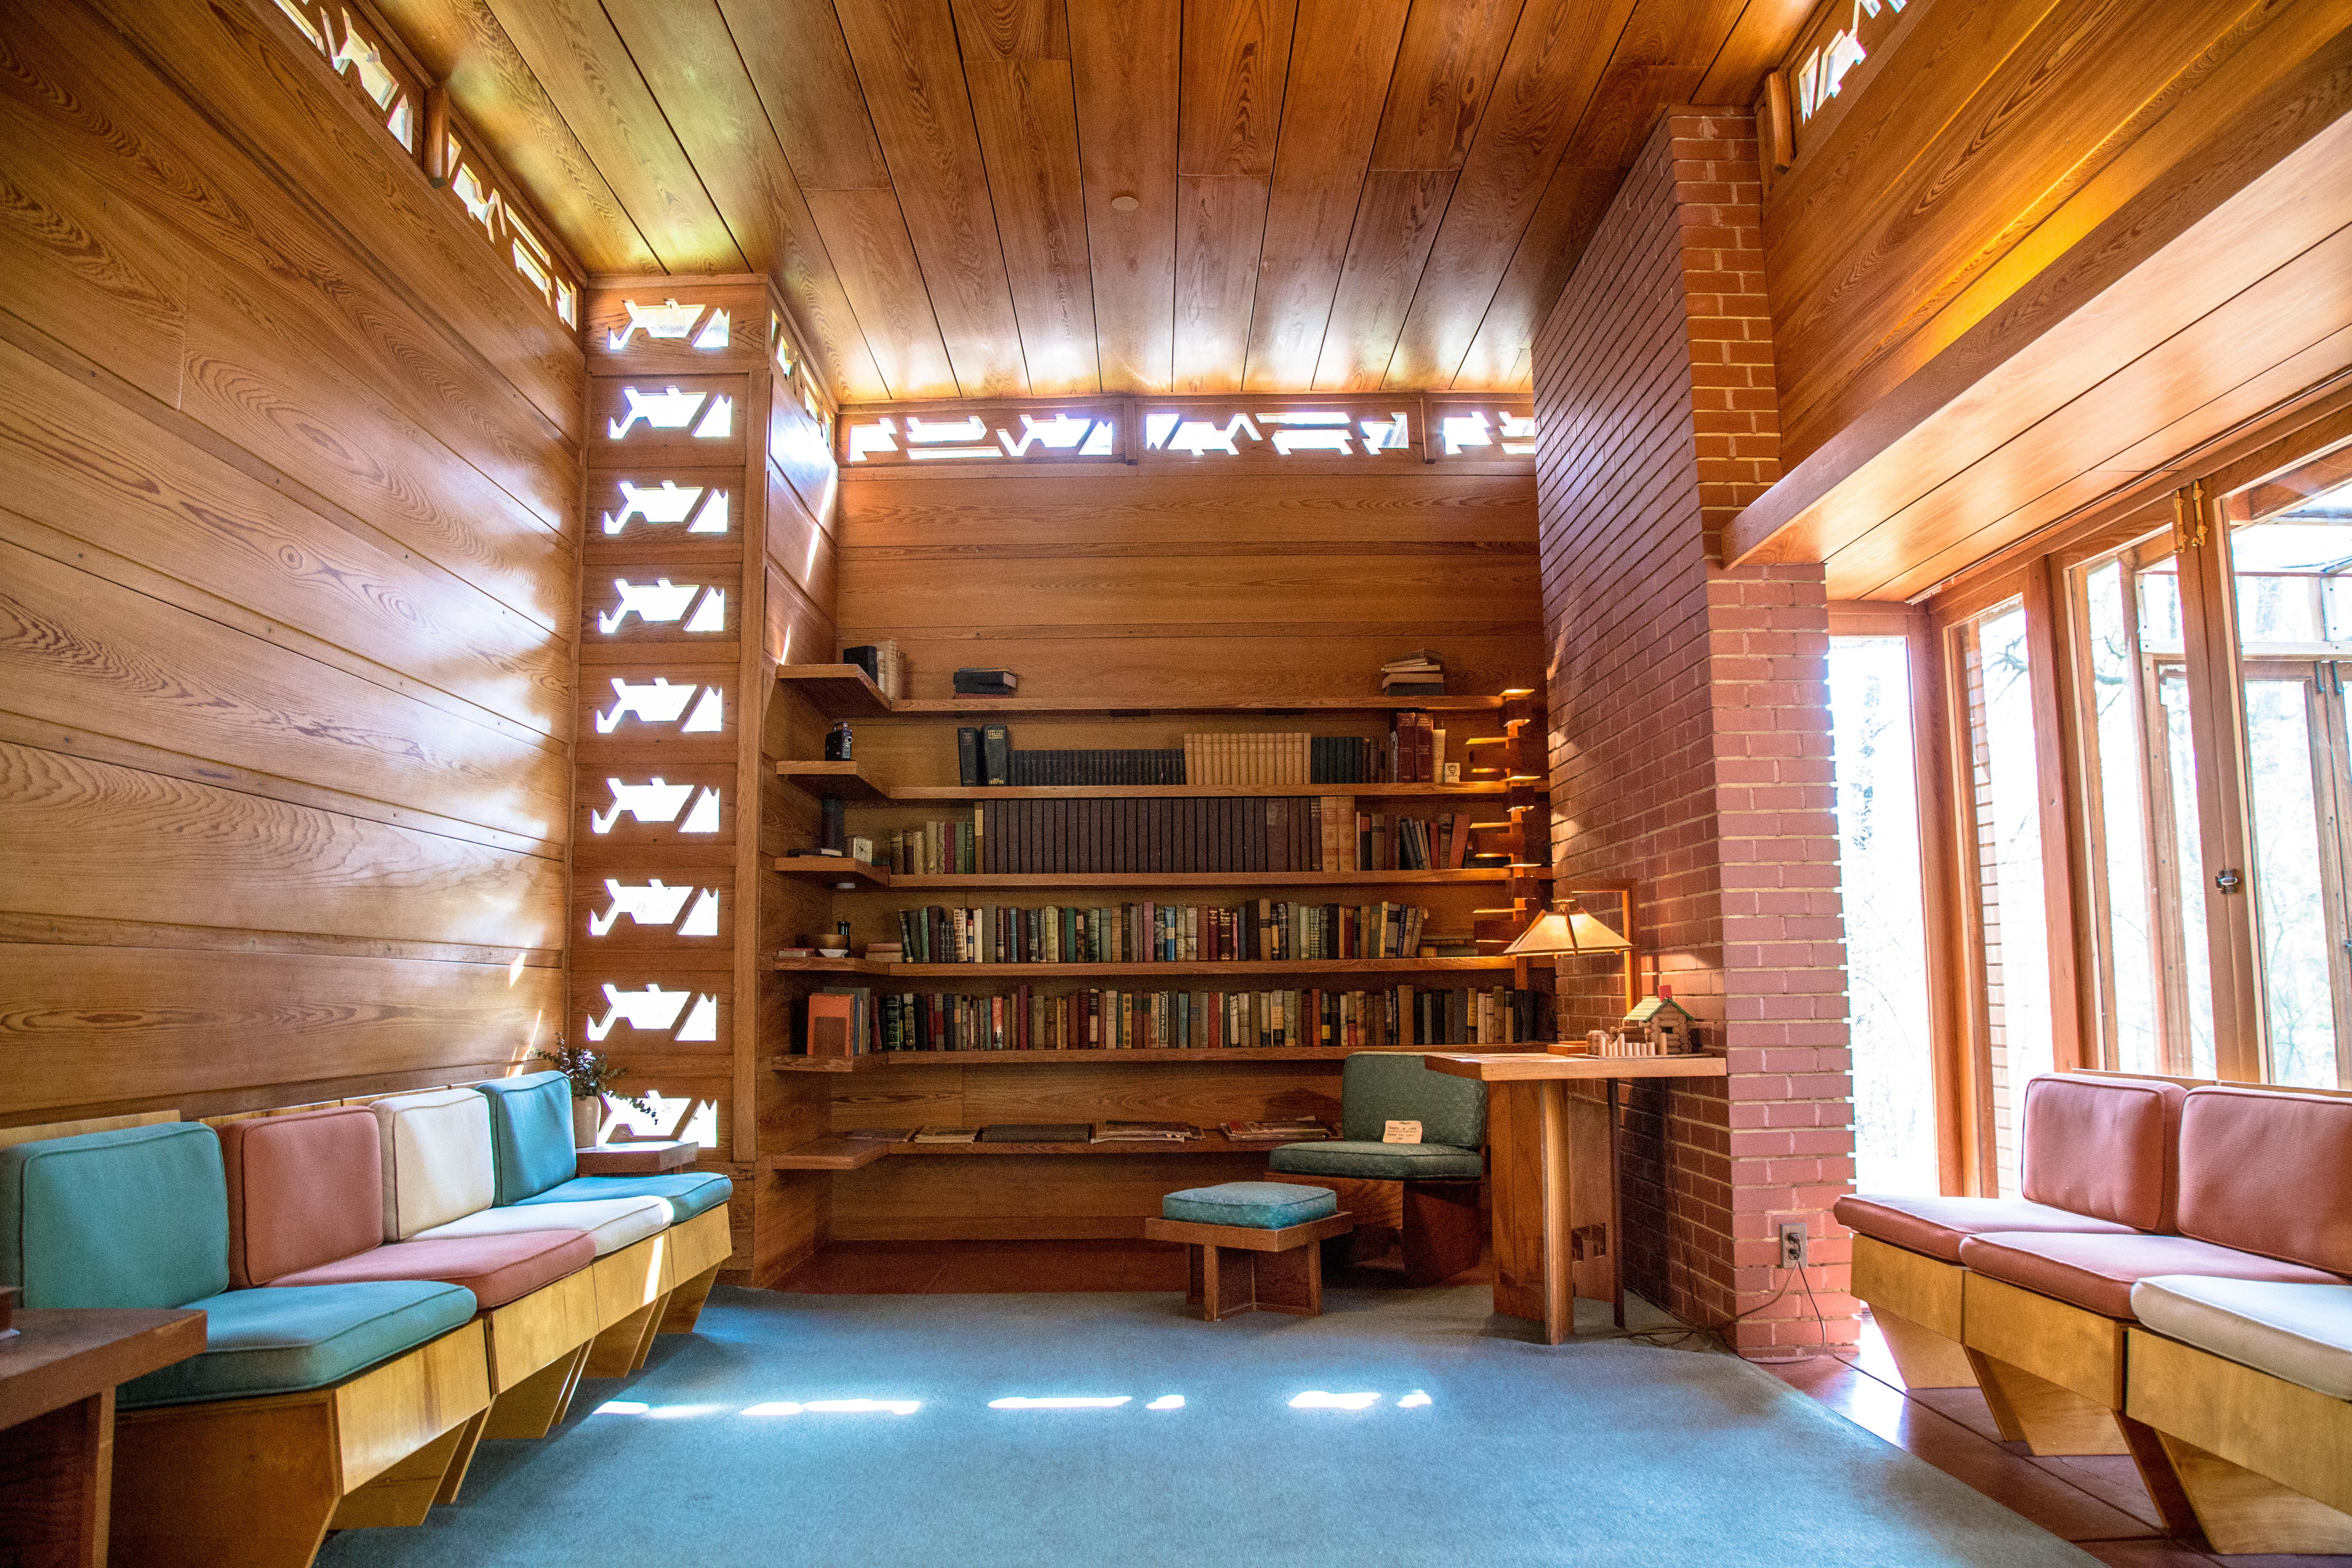 Frank Lloyd Wright's Pope Leighey House (Image: M Enriquez for Visit Alexandria){ }